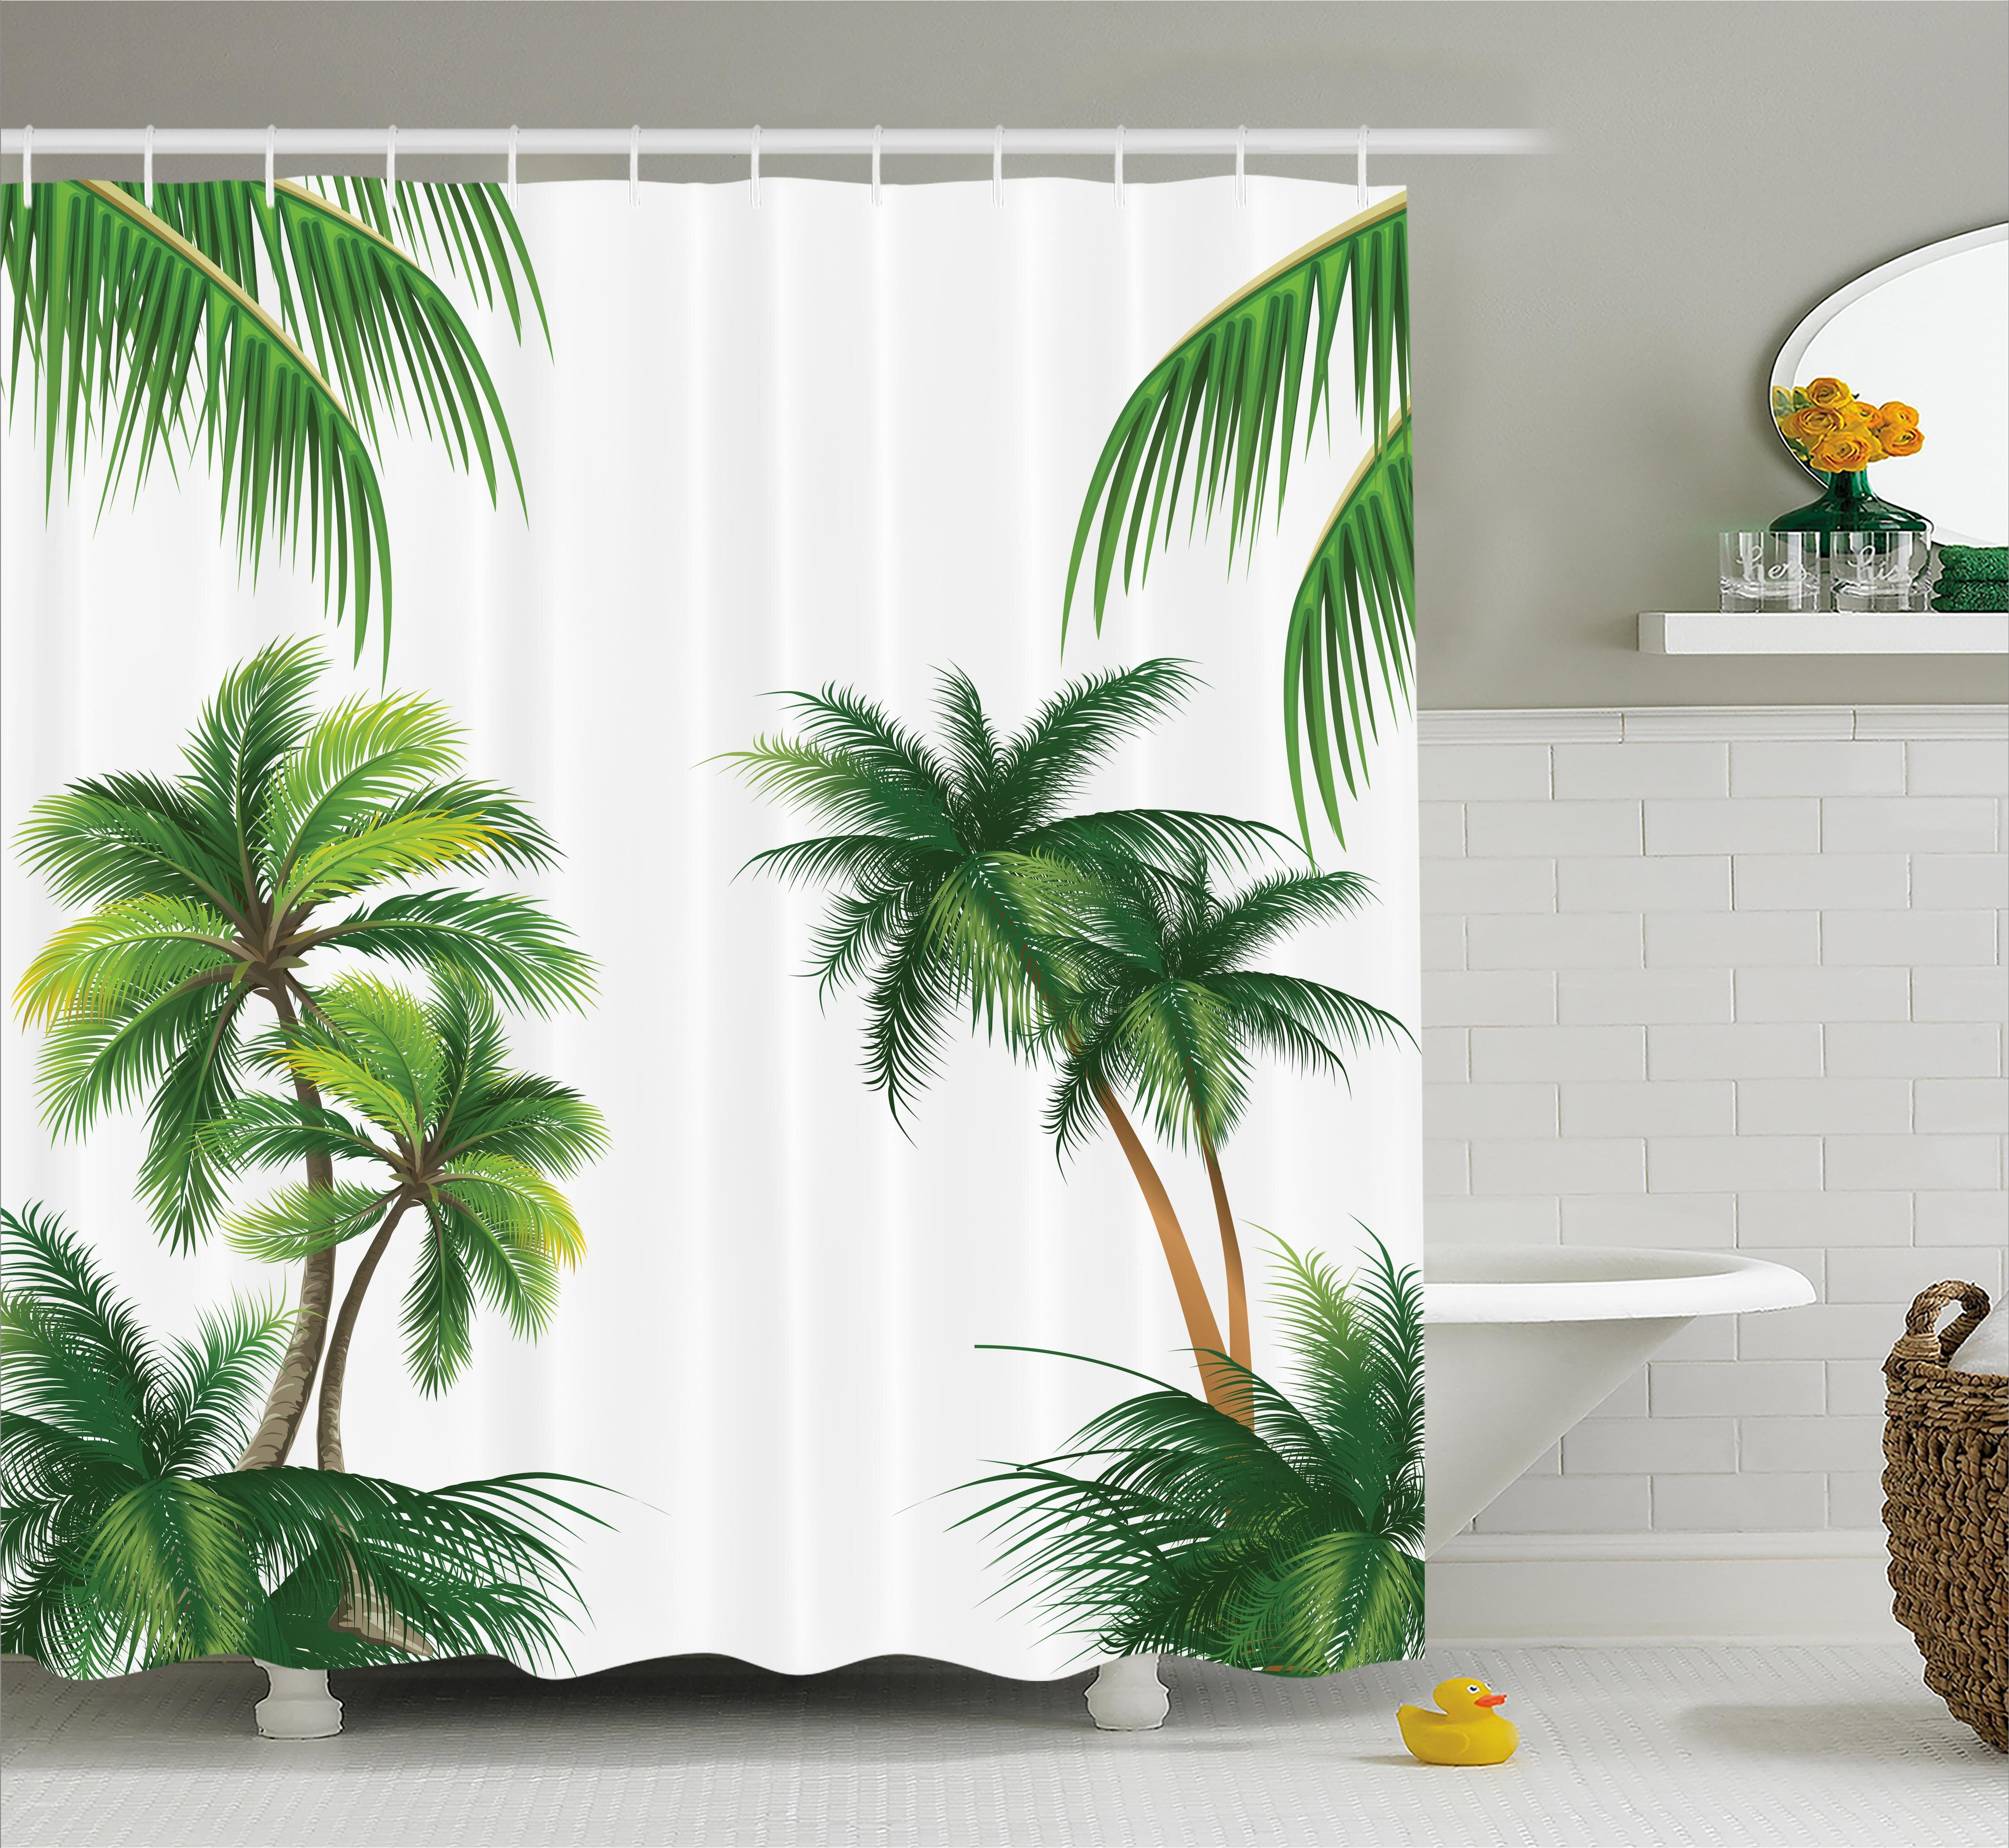 Aquila Coconut Palm Tree Plants Single Shower Curtain